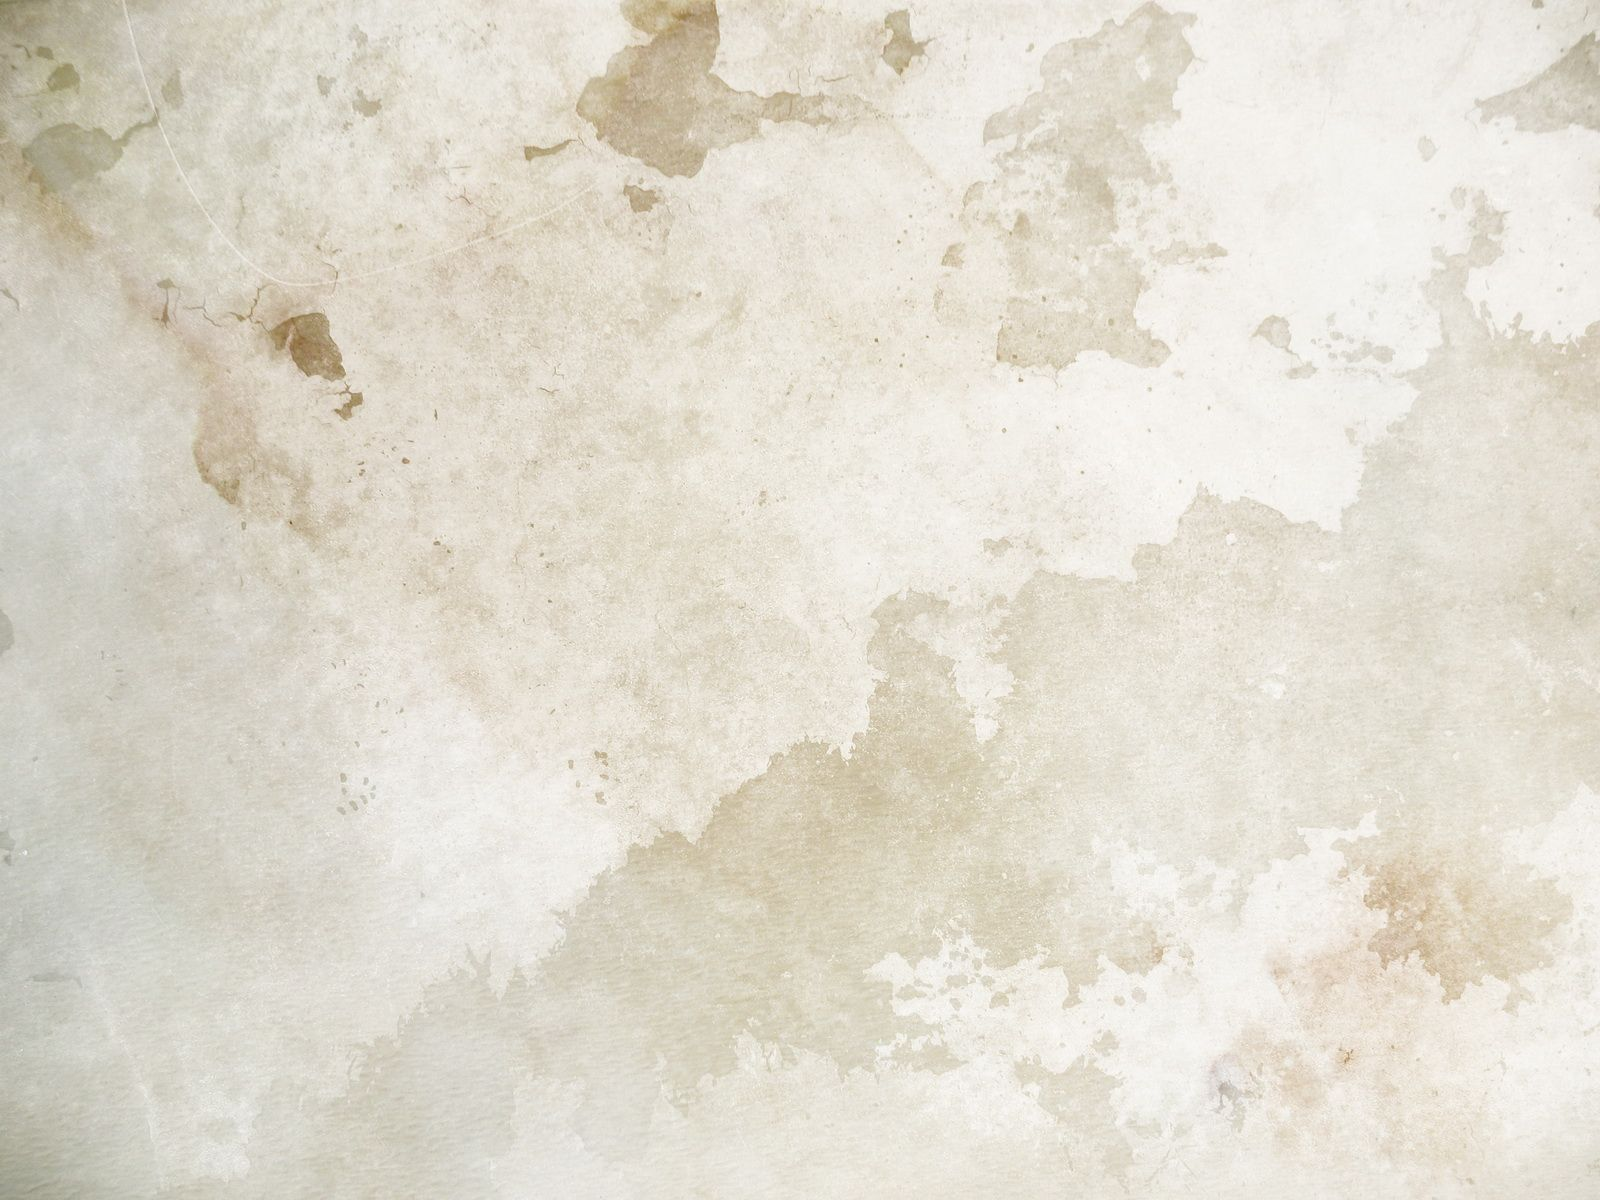 Download Texture Stucco, Texture, Photo, Background